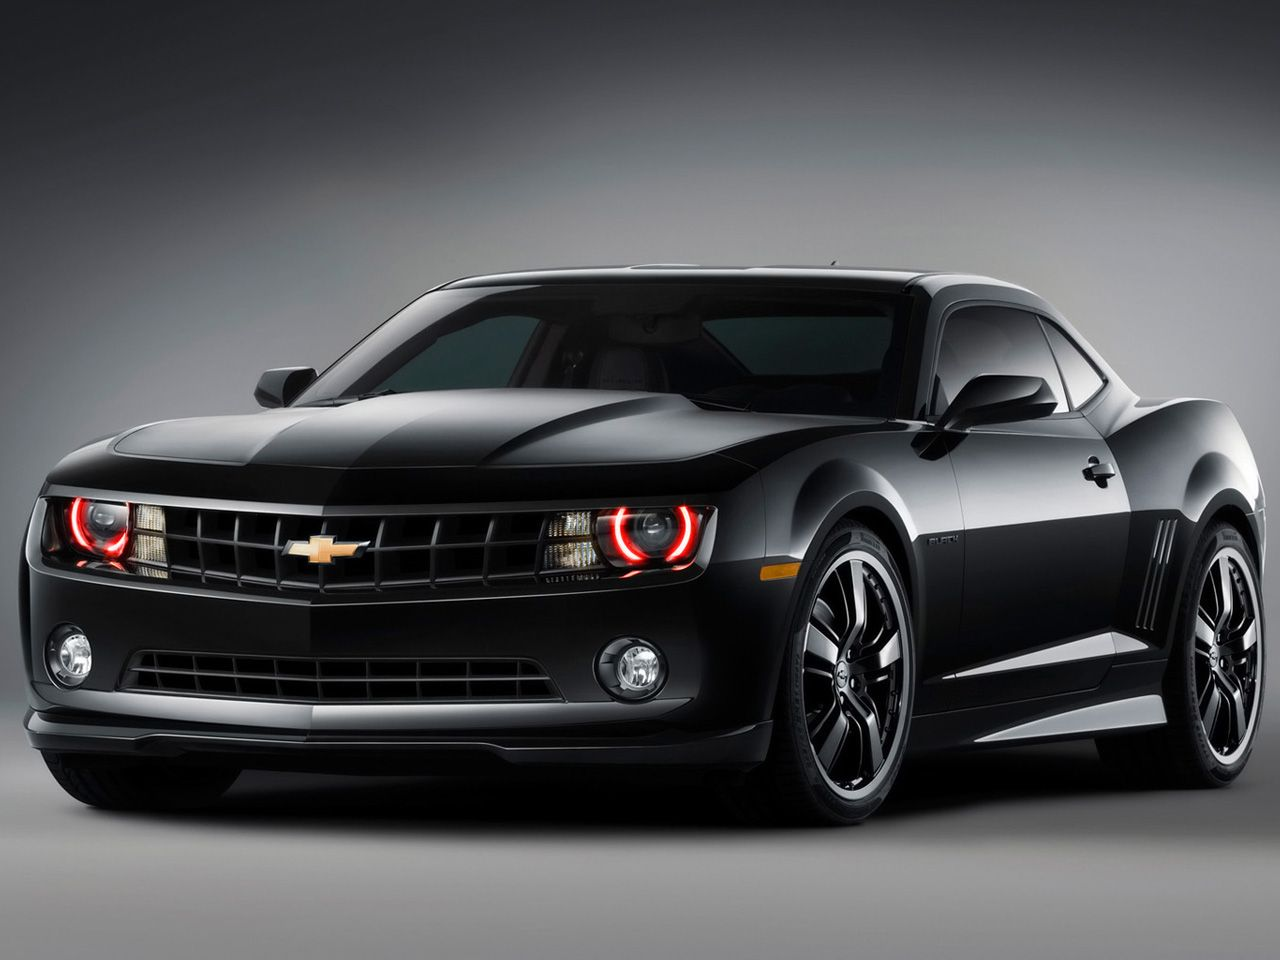 2010 chevrolet camaro black concept desktop wallpaper and high resolution images